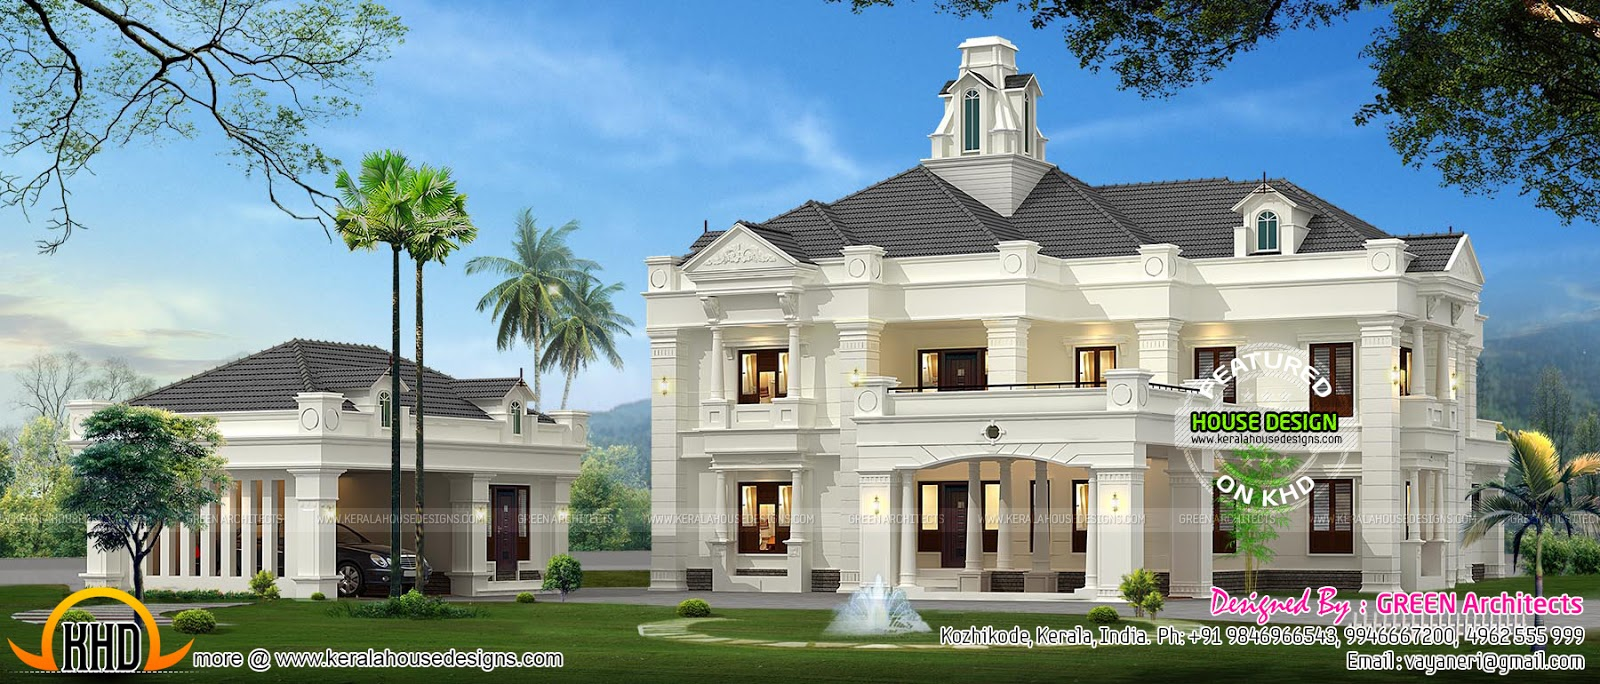 Colonial style indian house kerala home design and floor for House plans colonial style homes